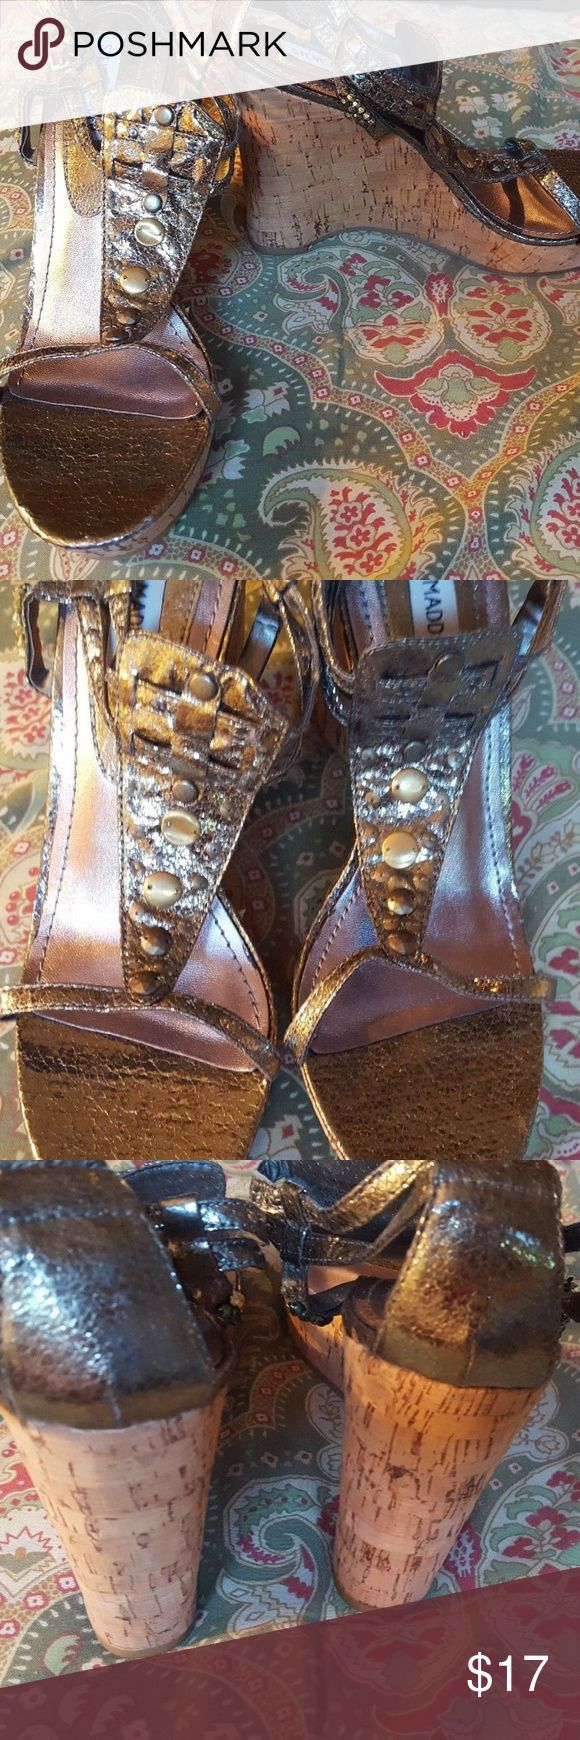 "Steve Madden 8.5 8 1/2 silver wedge sandals shoes Shoes are in excellent condition.  Heels are a little over 3.5"".  VYCCE.  Located in a smoke-free home. Steve Madden Shoes Sandals"